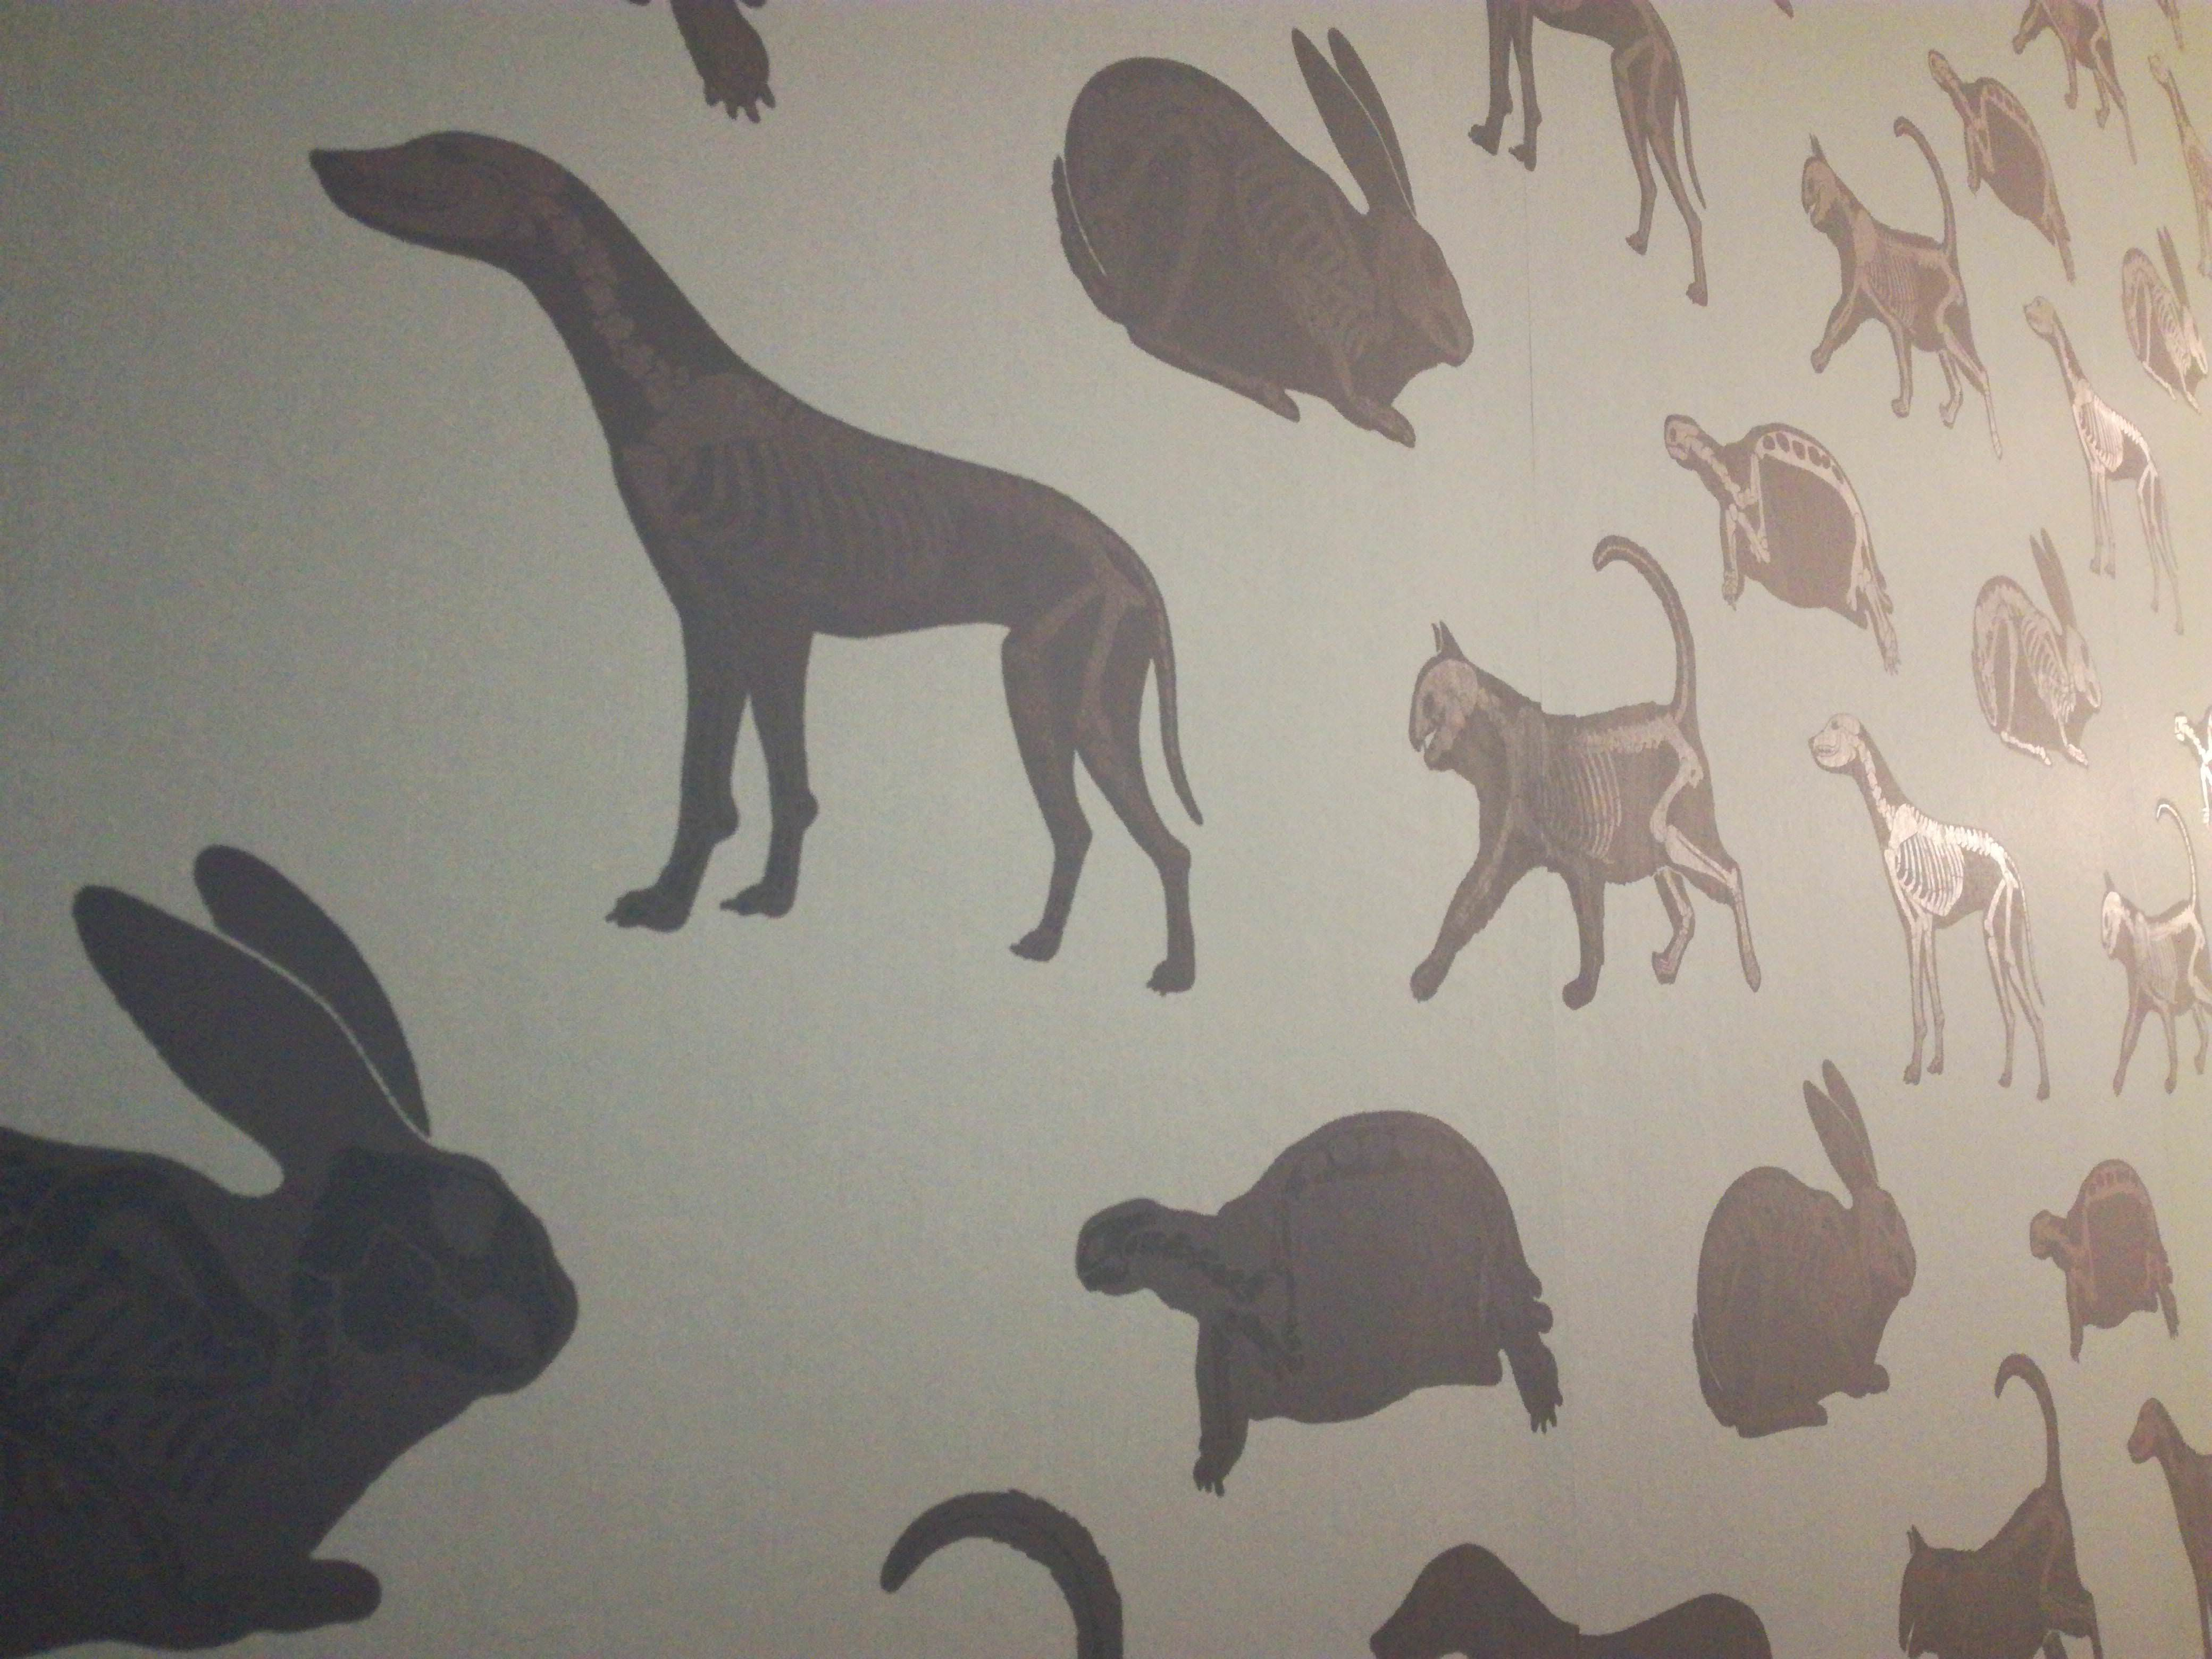 The wallpaper at the vet's has animal silhouettes with shiny skeletons in them